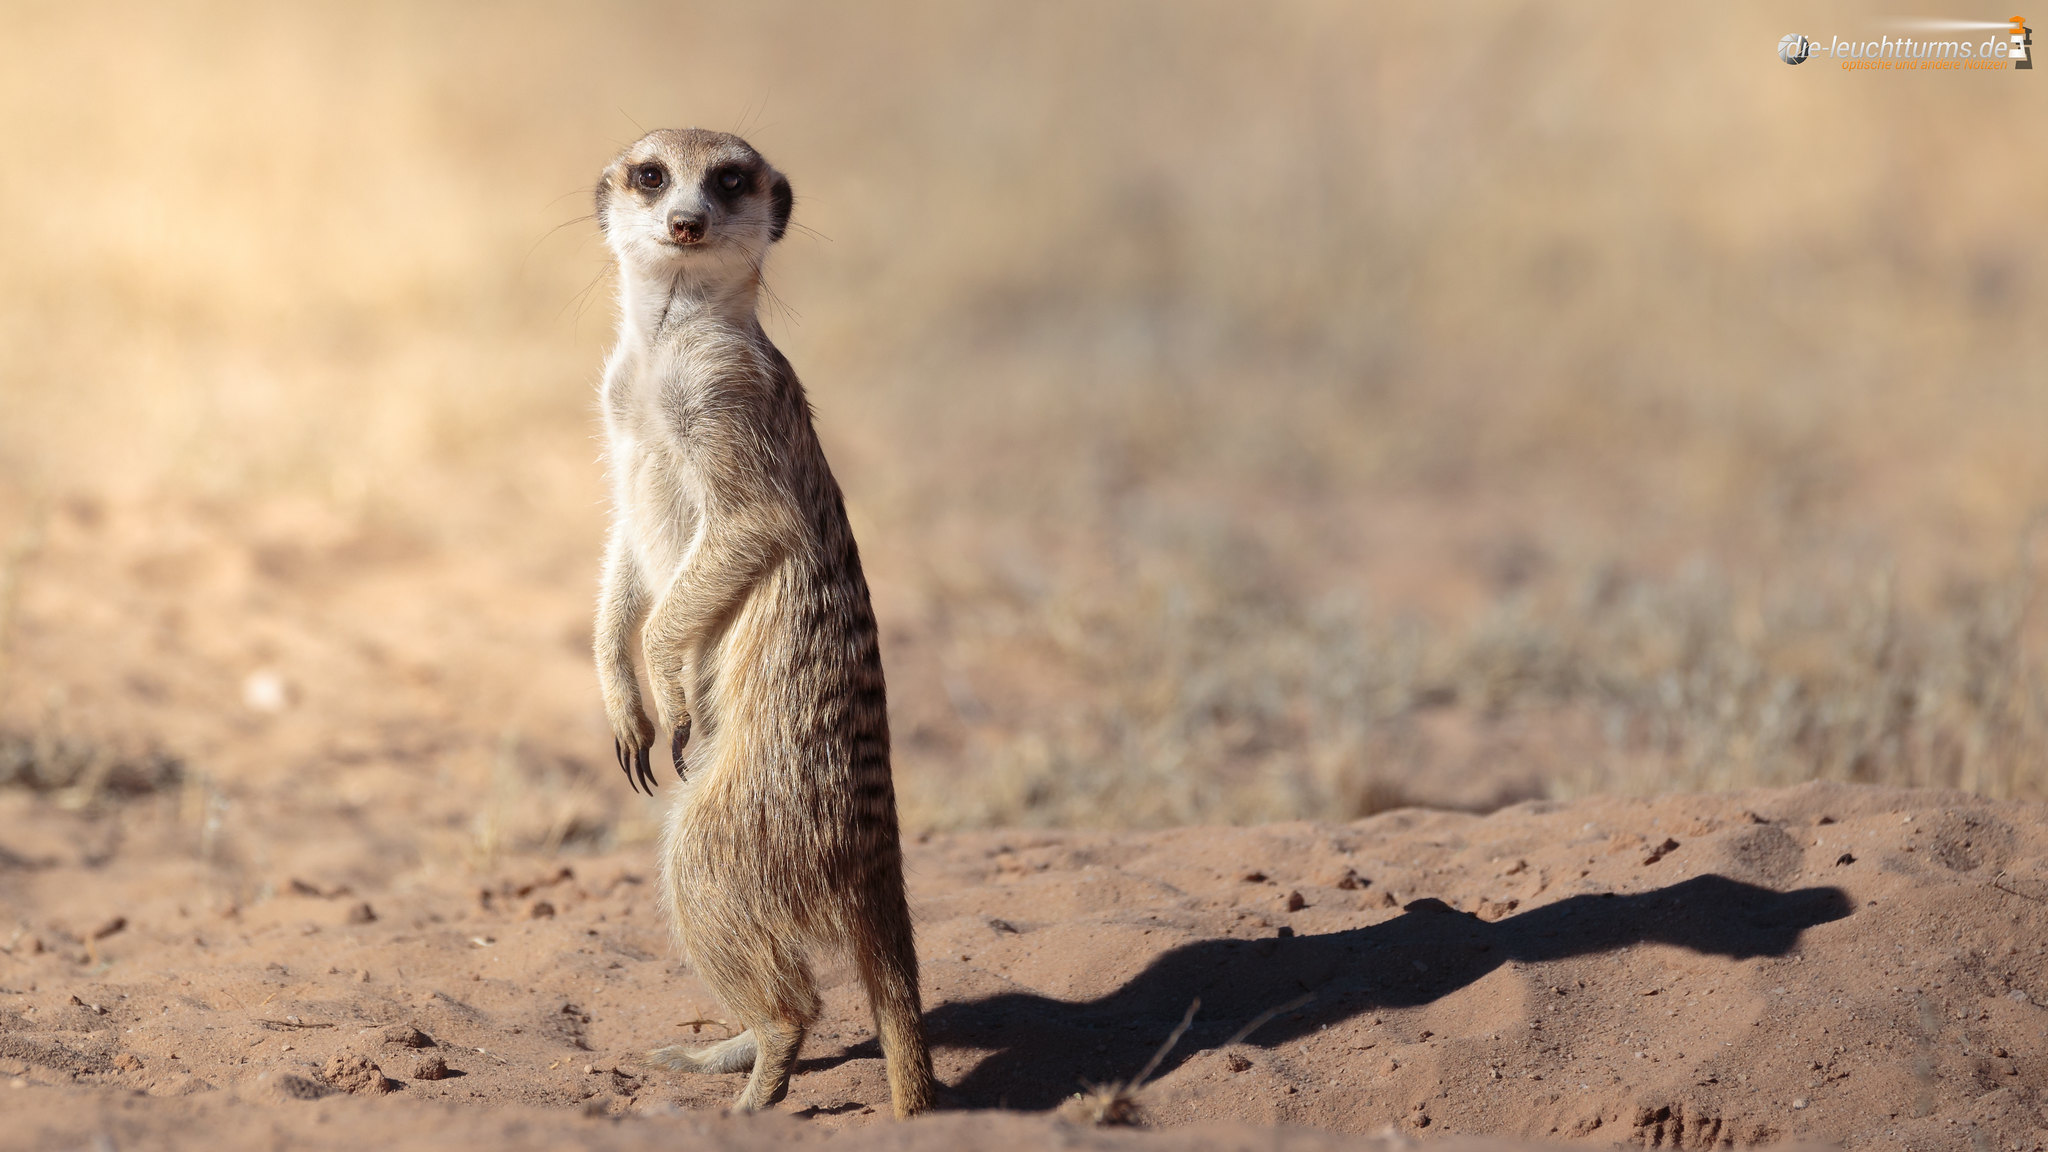 Guardian of the Kgalagadi